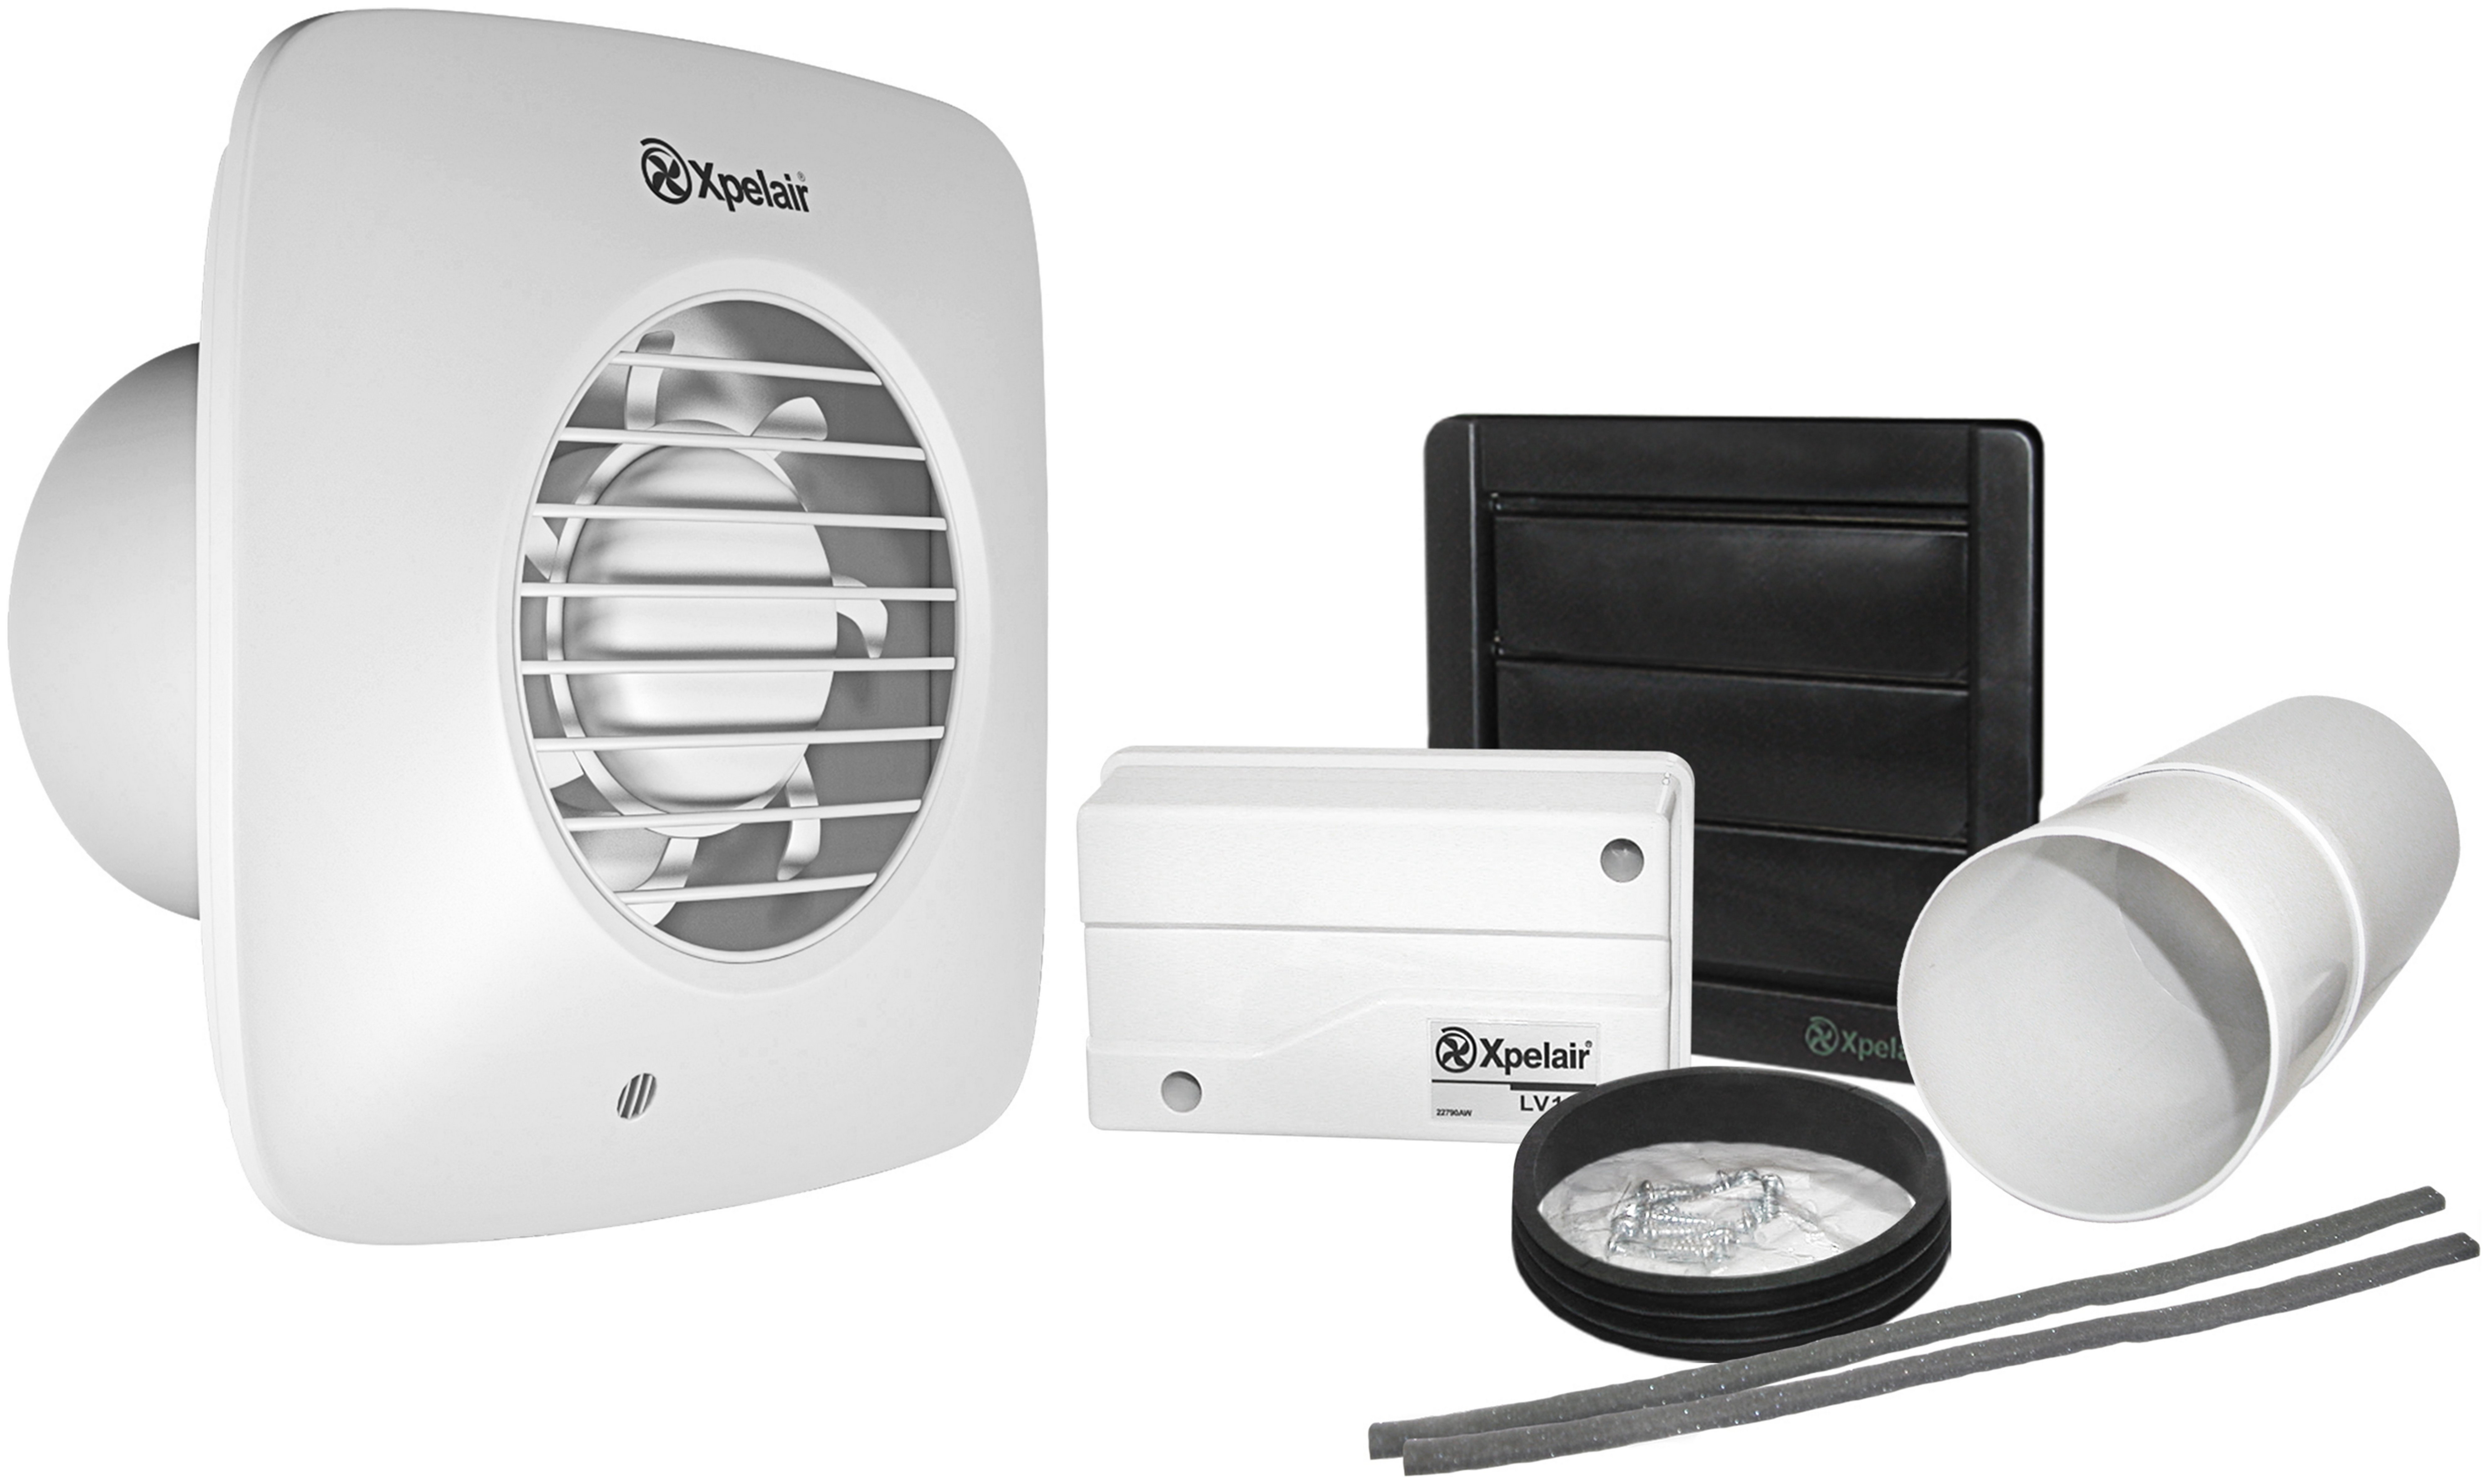 wiring a xpelair fan how to make diagram in word bathroom extractor fans free with